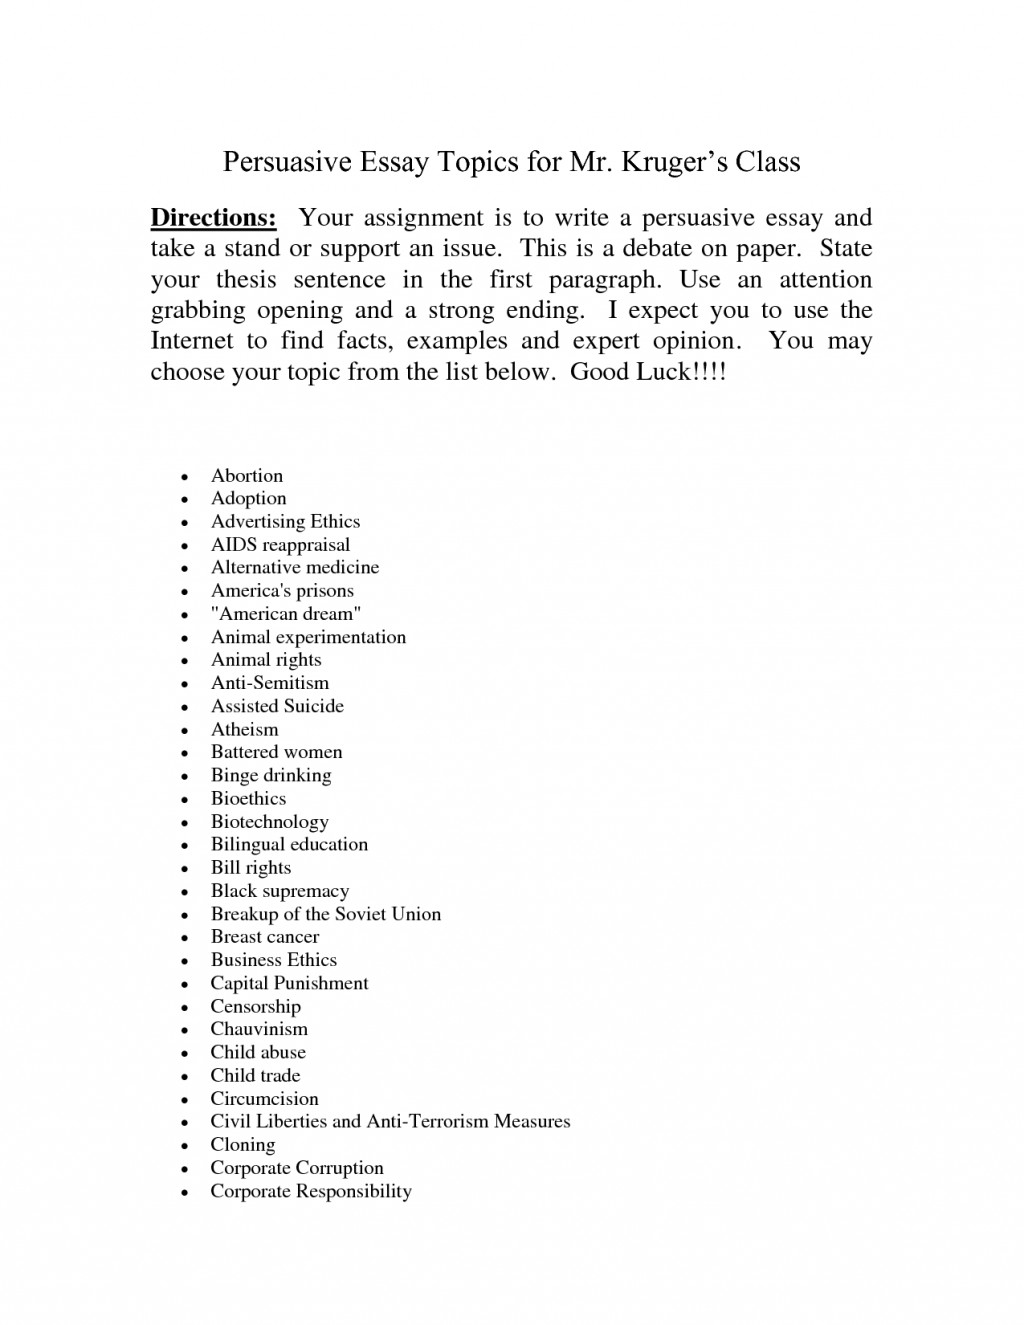 013 Argument Essay Student Samples Corporation Term Paper Writing List Of Argumentativepersuasive Topics Awesome Collection Strong Argumentative Best Topic Great College Good Research Gatsby Beautiful Persuasive Uk For Large